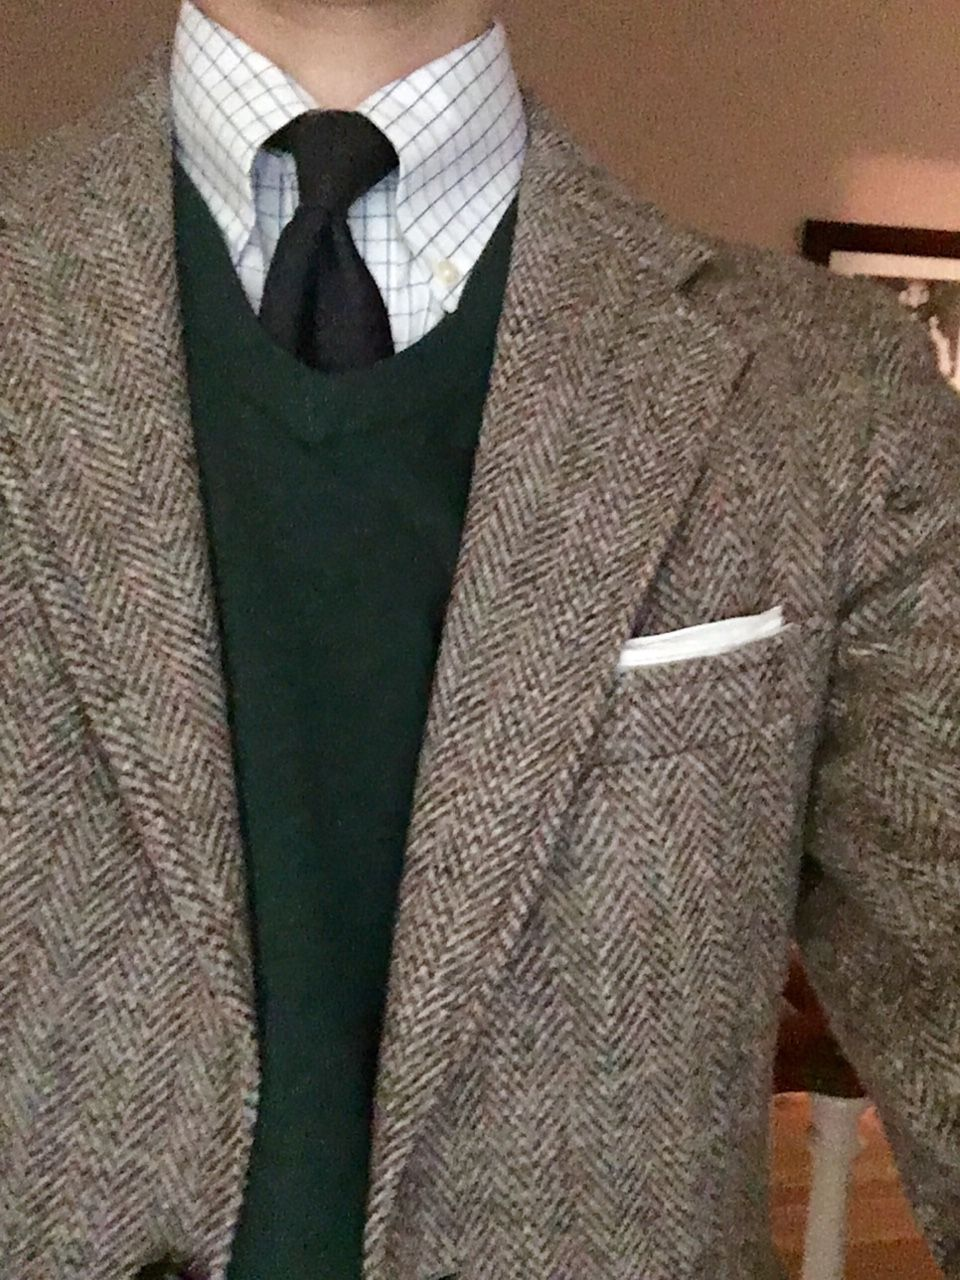 Light Grey Tweed Jacket White Shirt With Blue Check Navy Tie Khakis Green Sweater Tweed Jacket Men Mens Outfits Harris Tweed Jacket